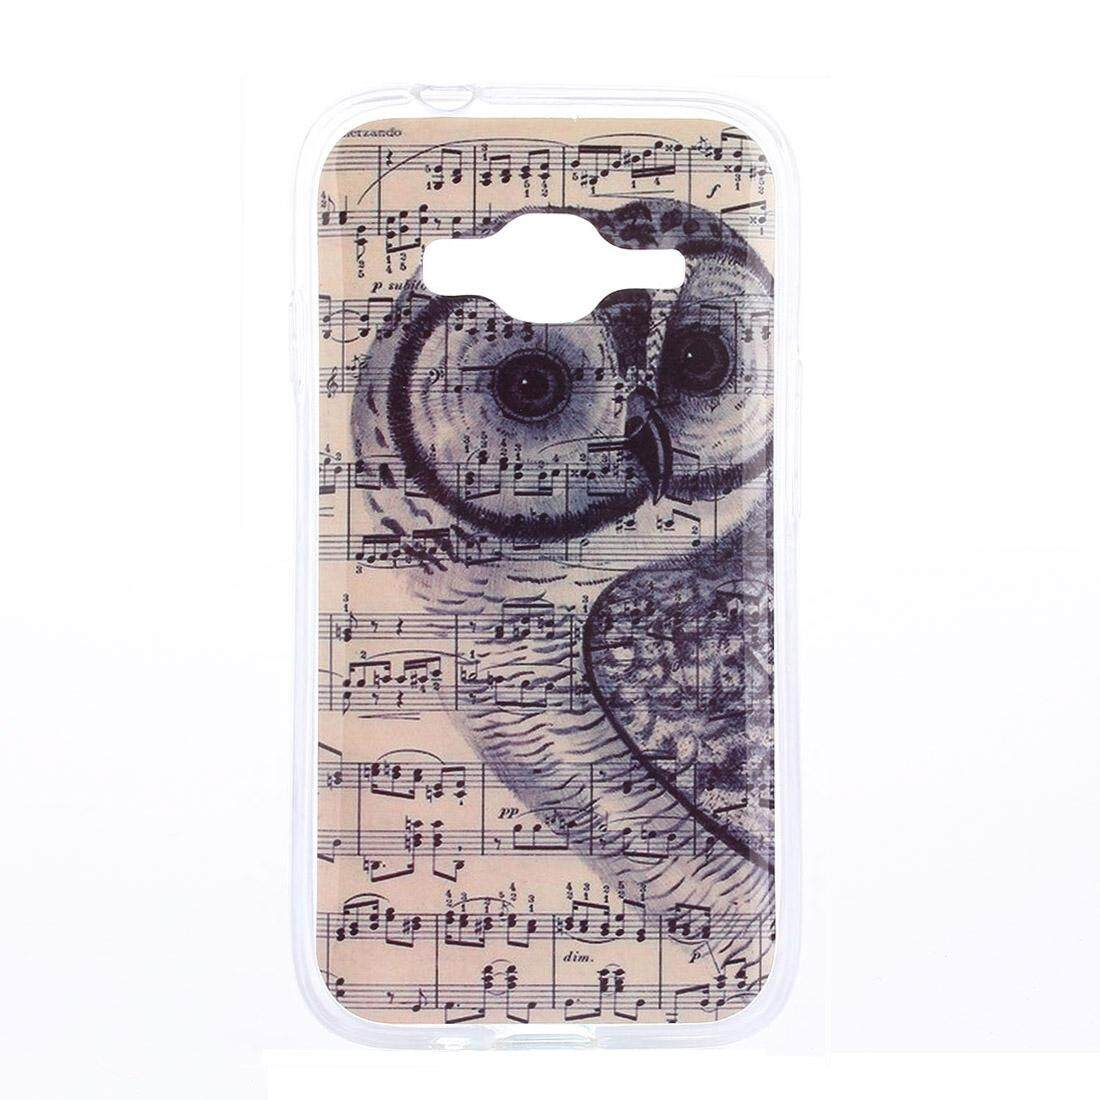 Features For Samsung Galaxy J1 Mini Prime Sm J106 Note And Owl V2 Gold Detail Gambar Pattern Tpu Back Case Terbaru